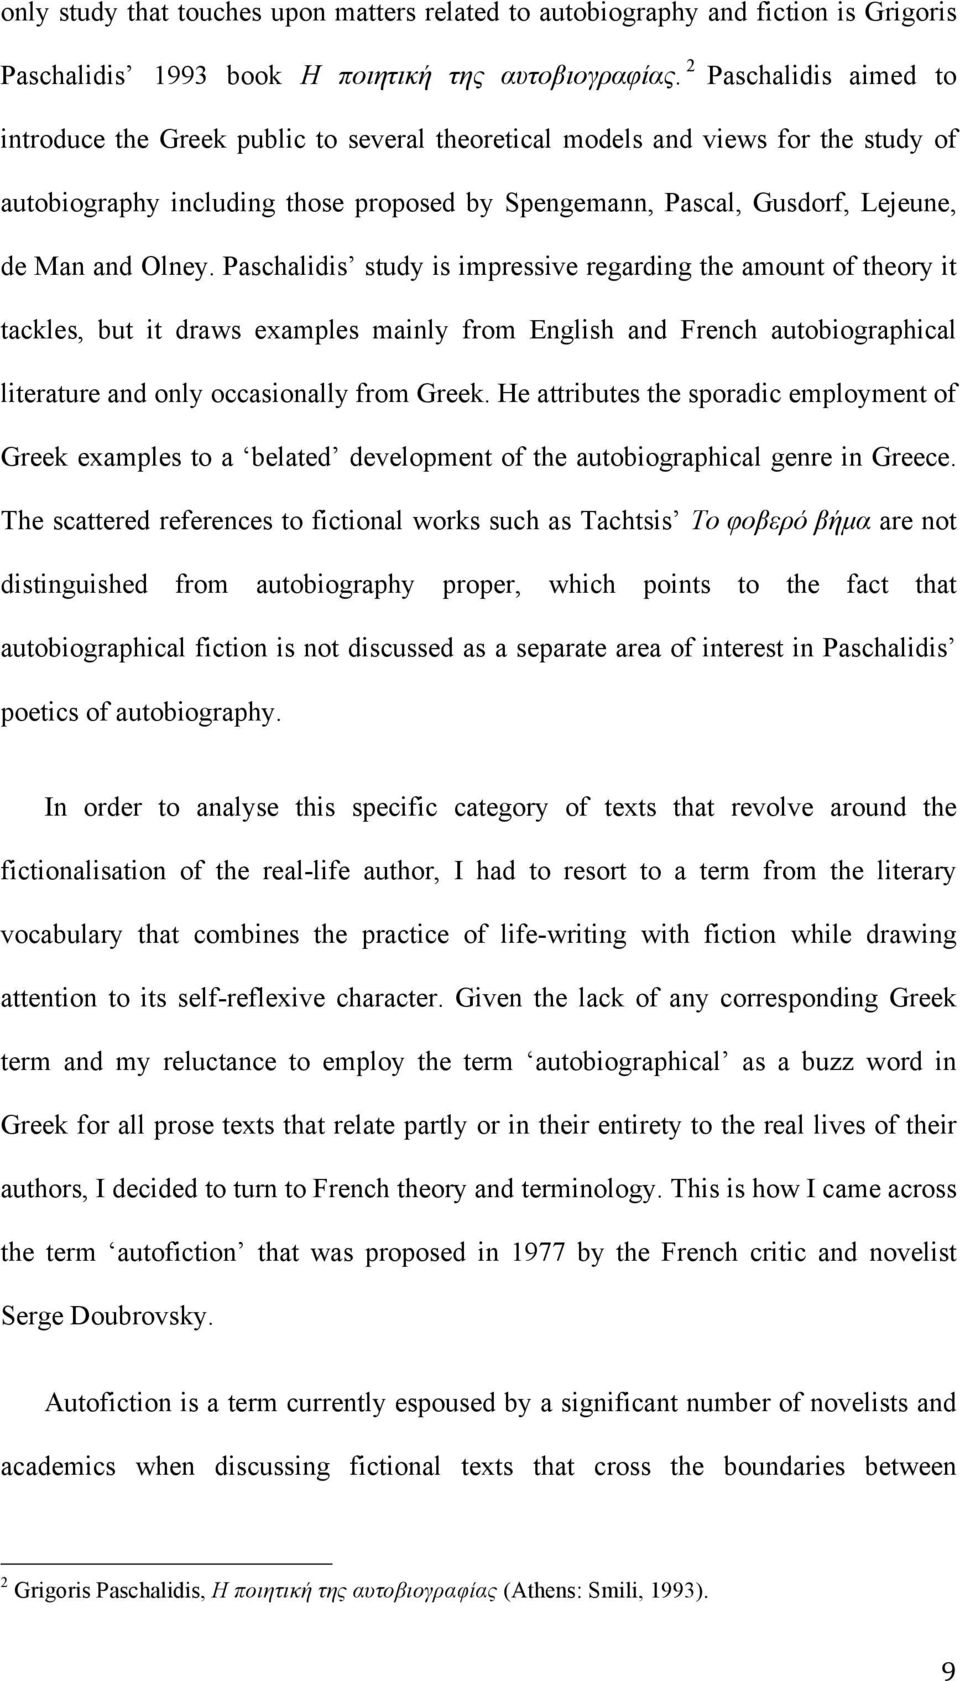 Olney. Paschalidis study is impressive regarding the amount of theory it tackles, but it draws examples mainly from English and French autobiographical literature and only occasionally from Greek.